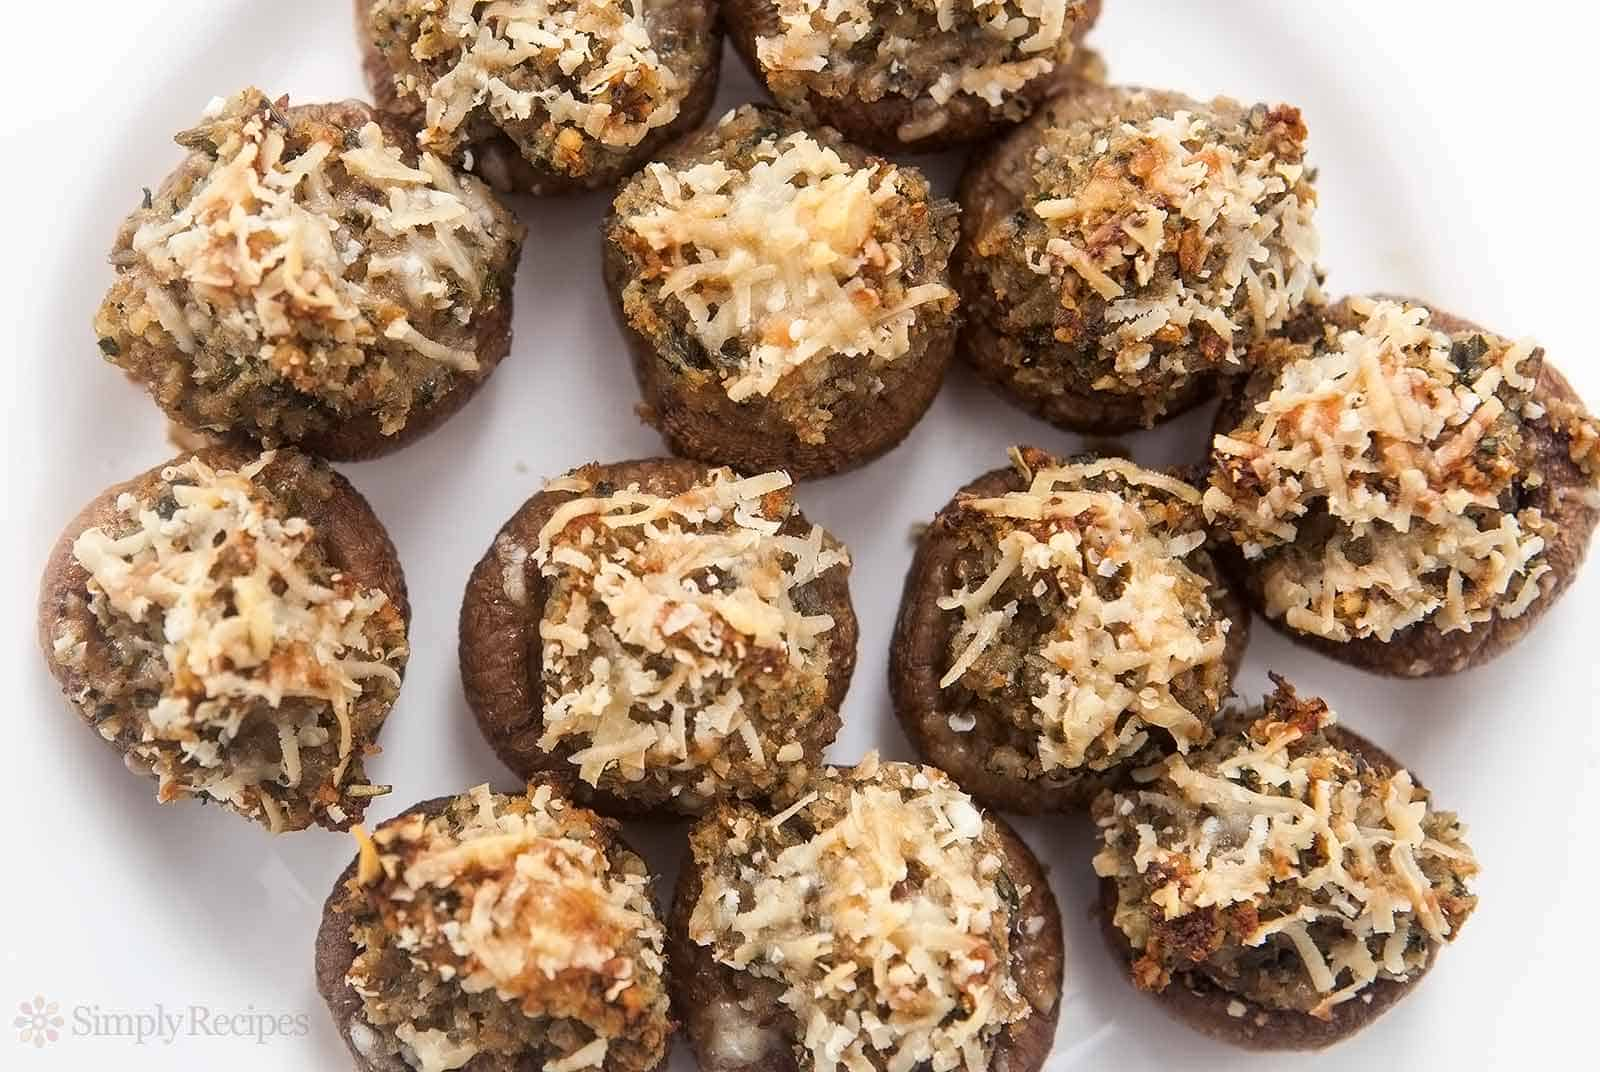 Delicious stuffed mushrooms